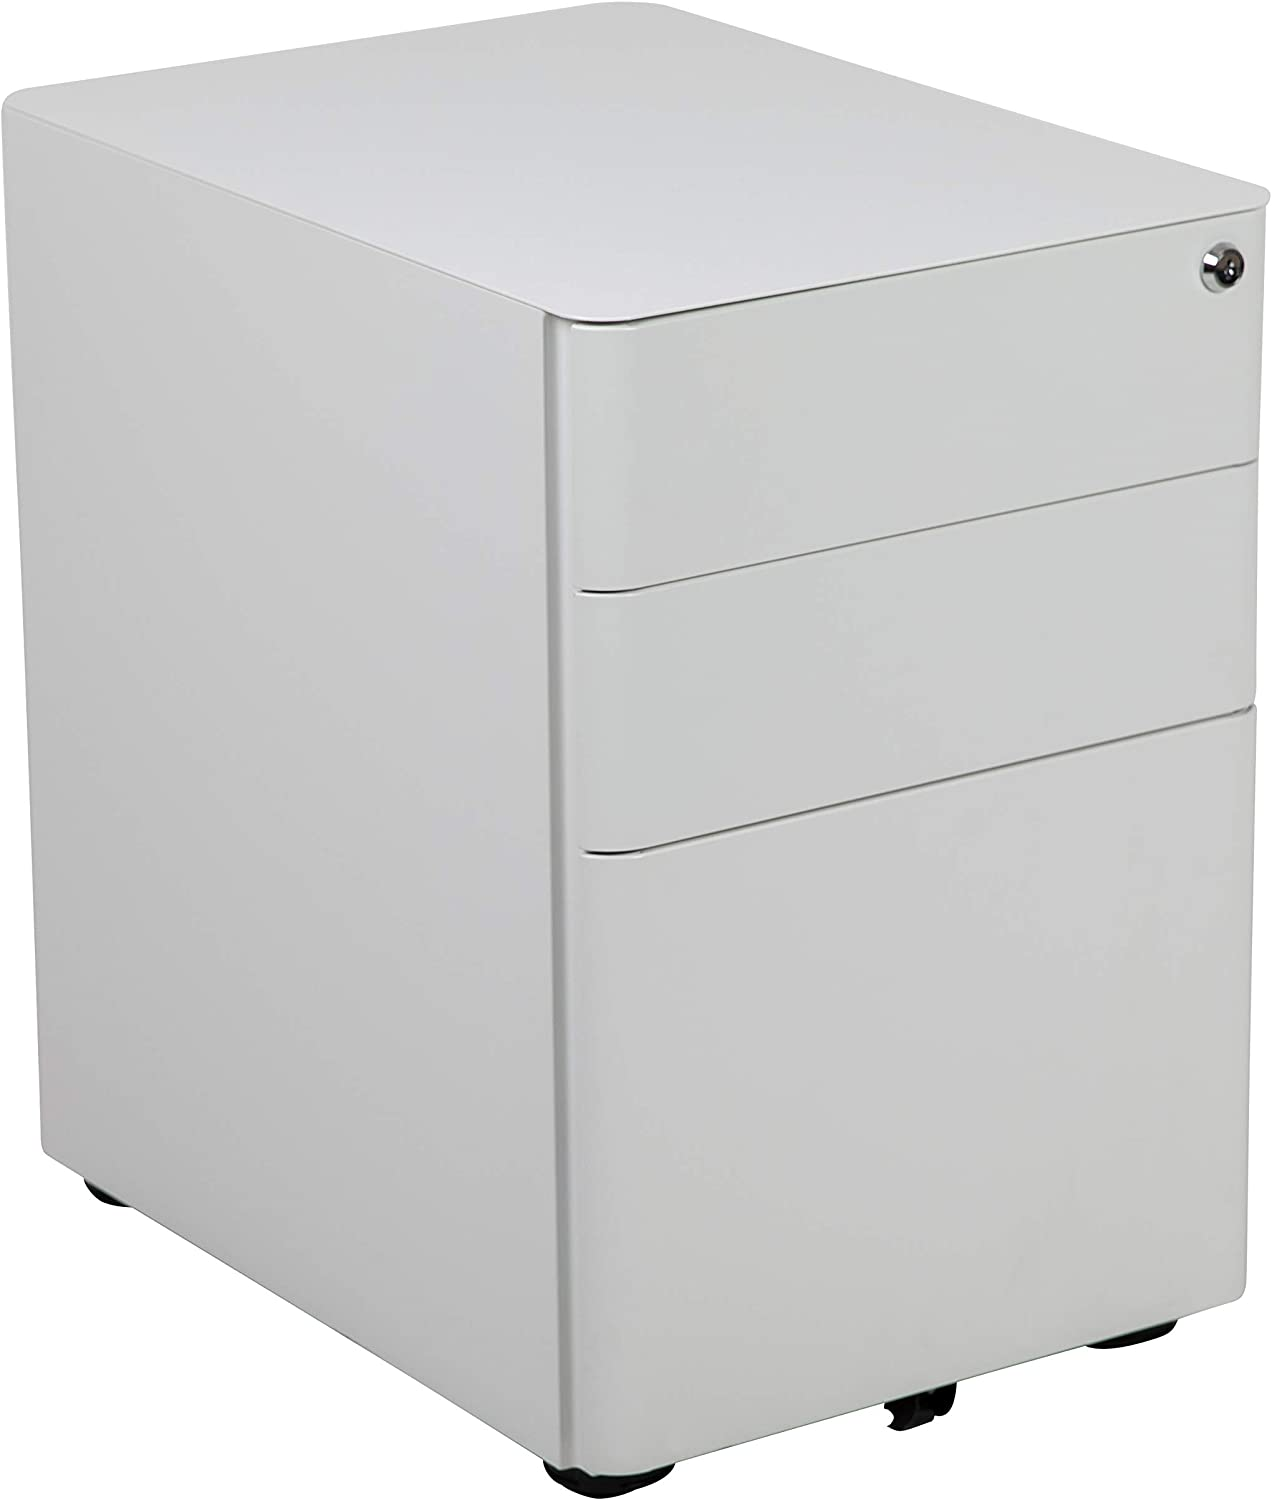 Flash Furniture Modern 3-Drawer Mobile Locking Filing Cabinet with Anti-Tilt Mechanism and Hanging Drawer for Legal & Letter Files, White